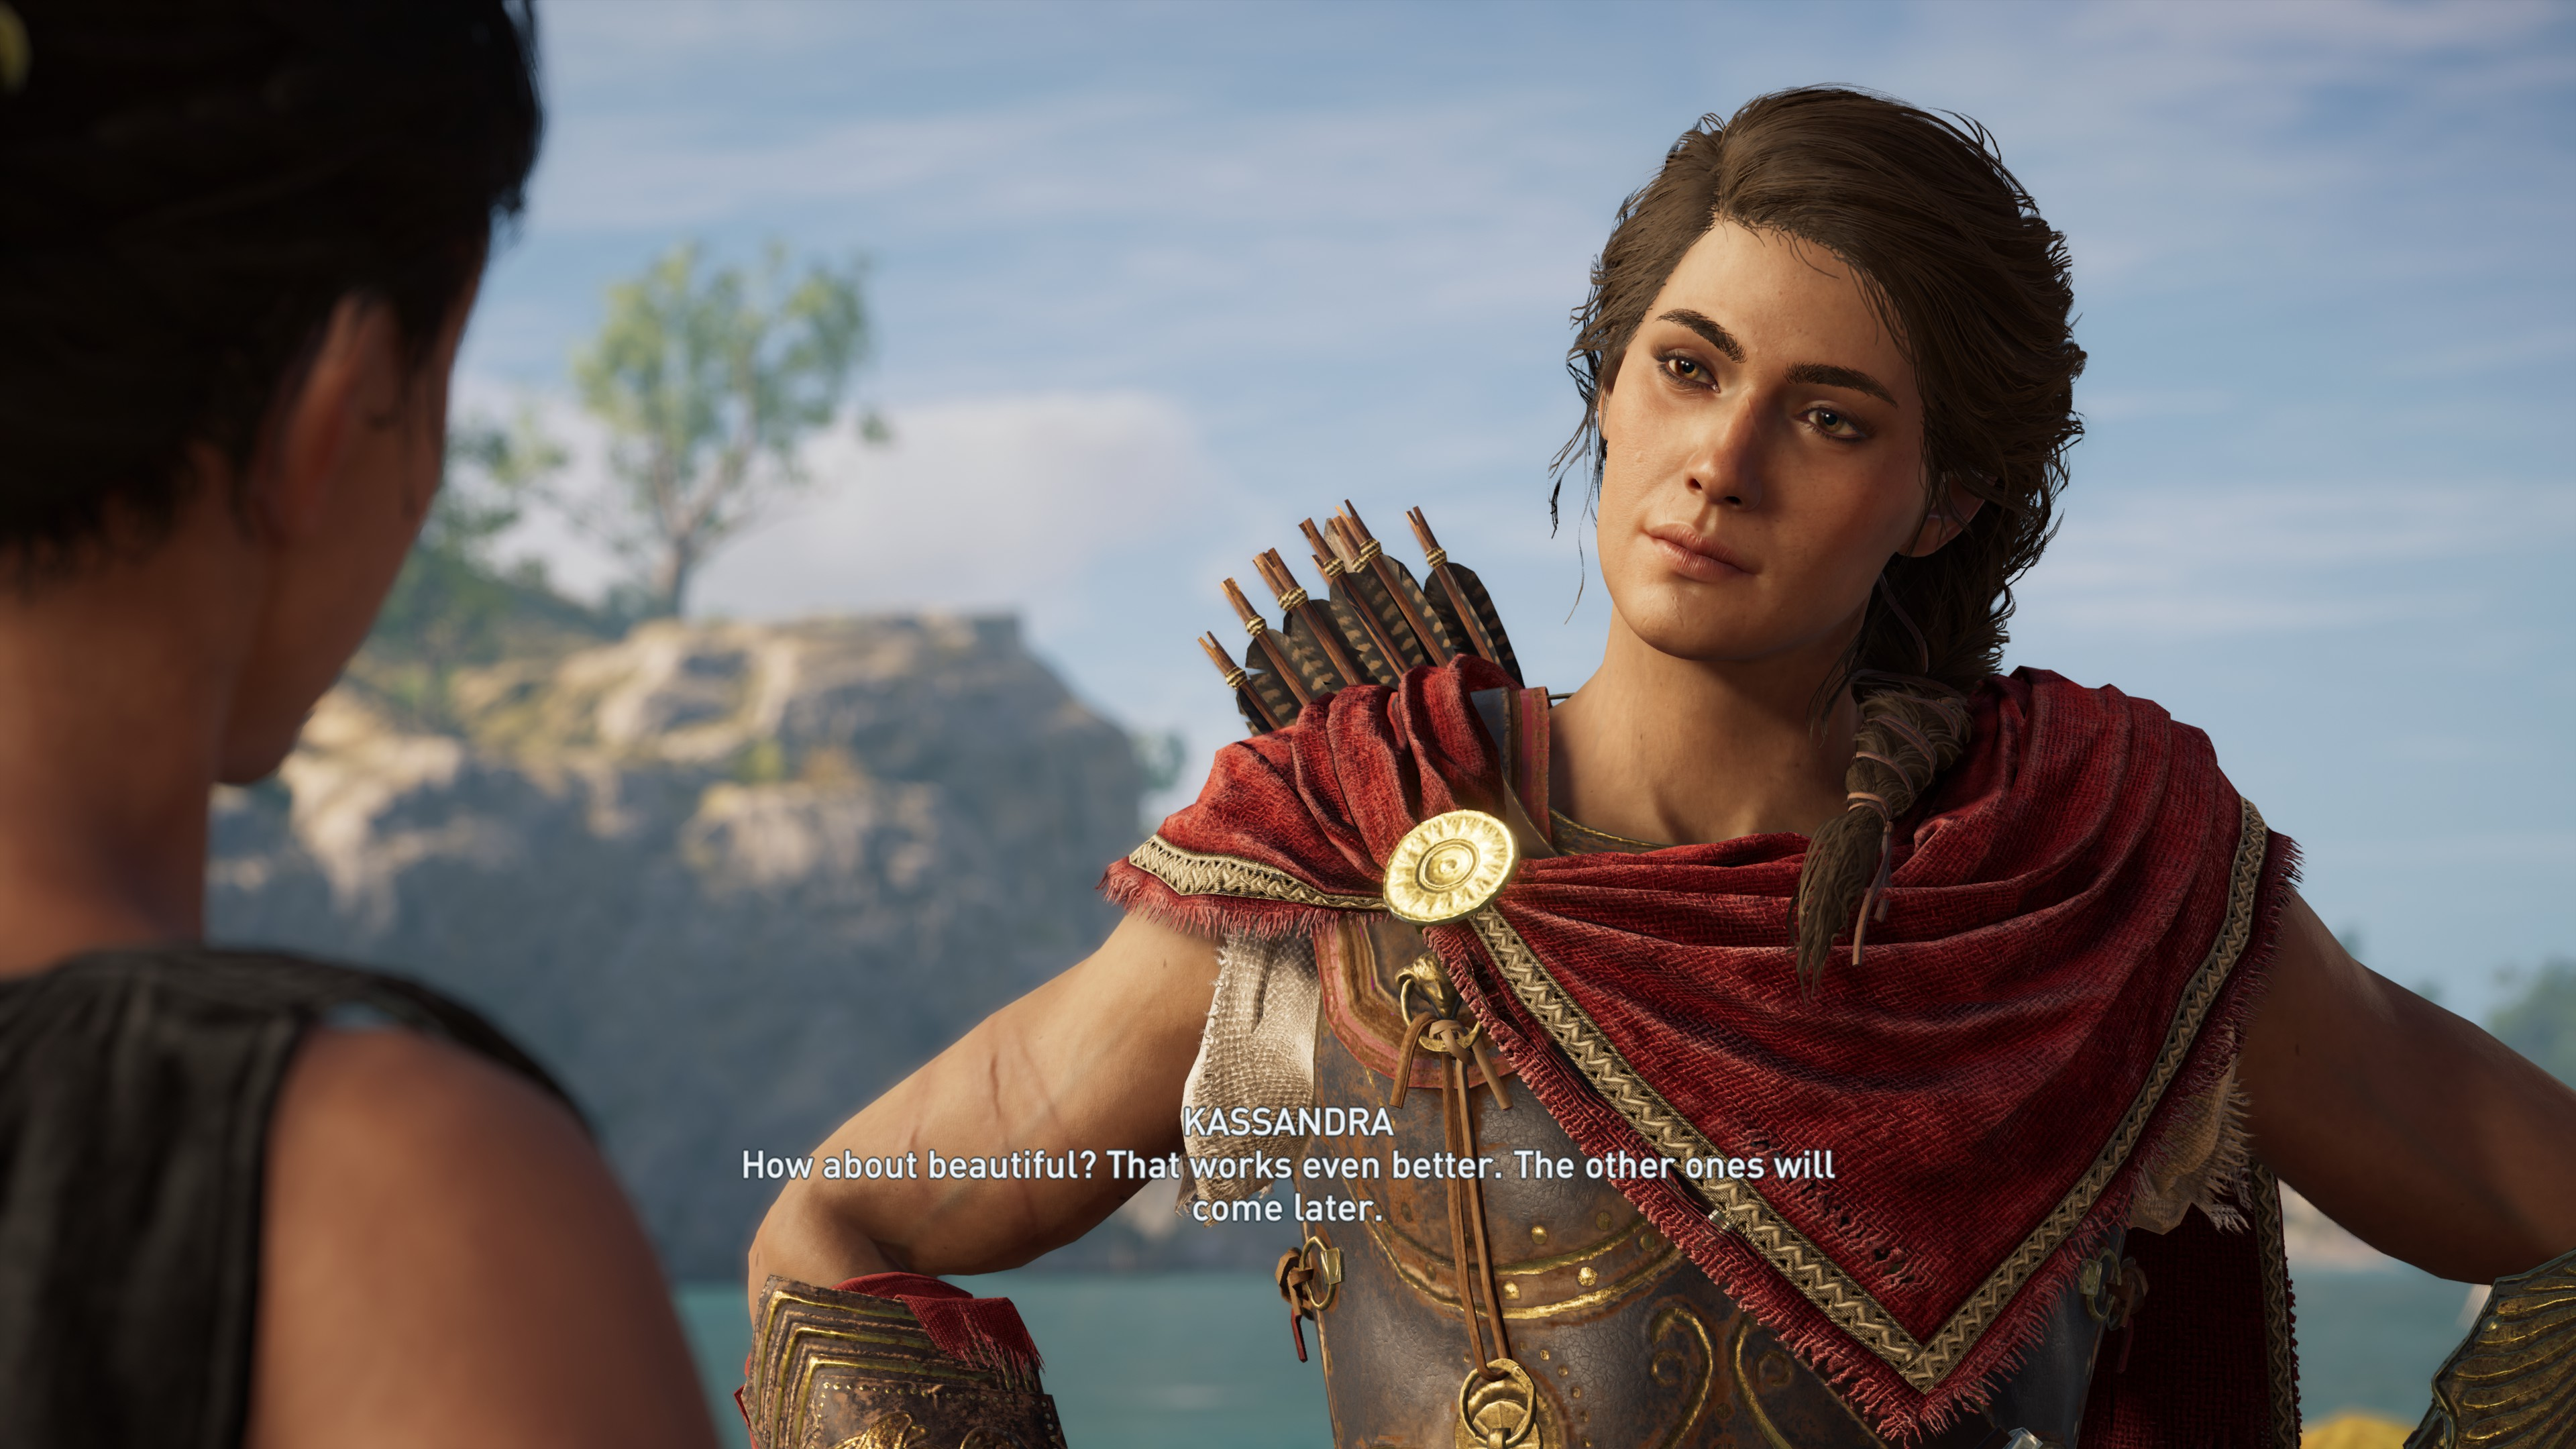 Assassin S Creed Odyssey To Alter Dlc Romance Dialogue Rock